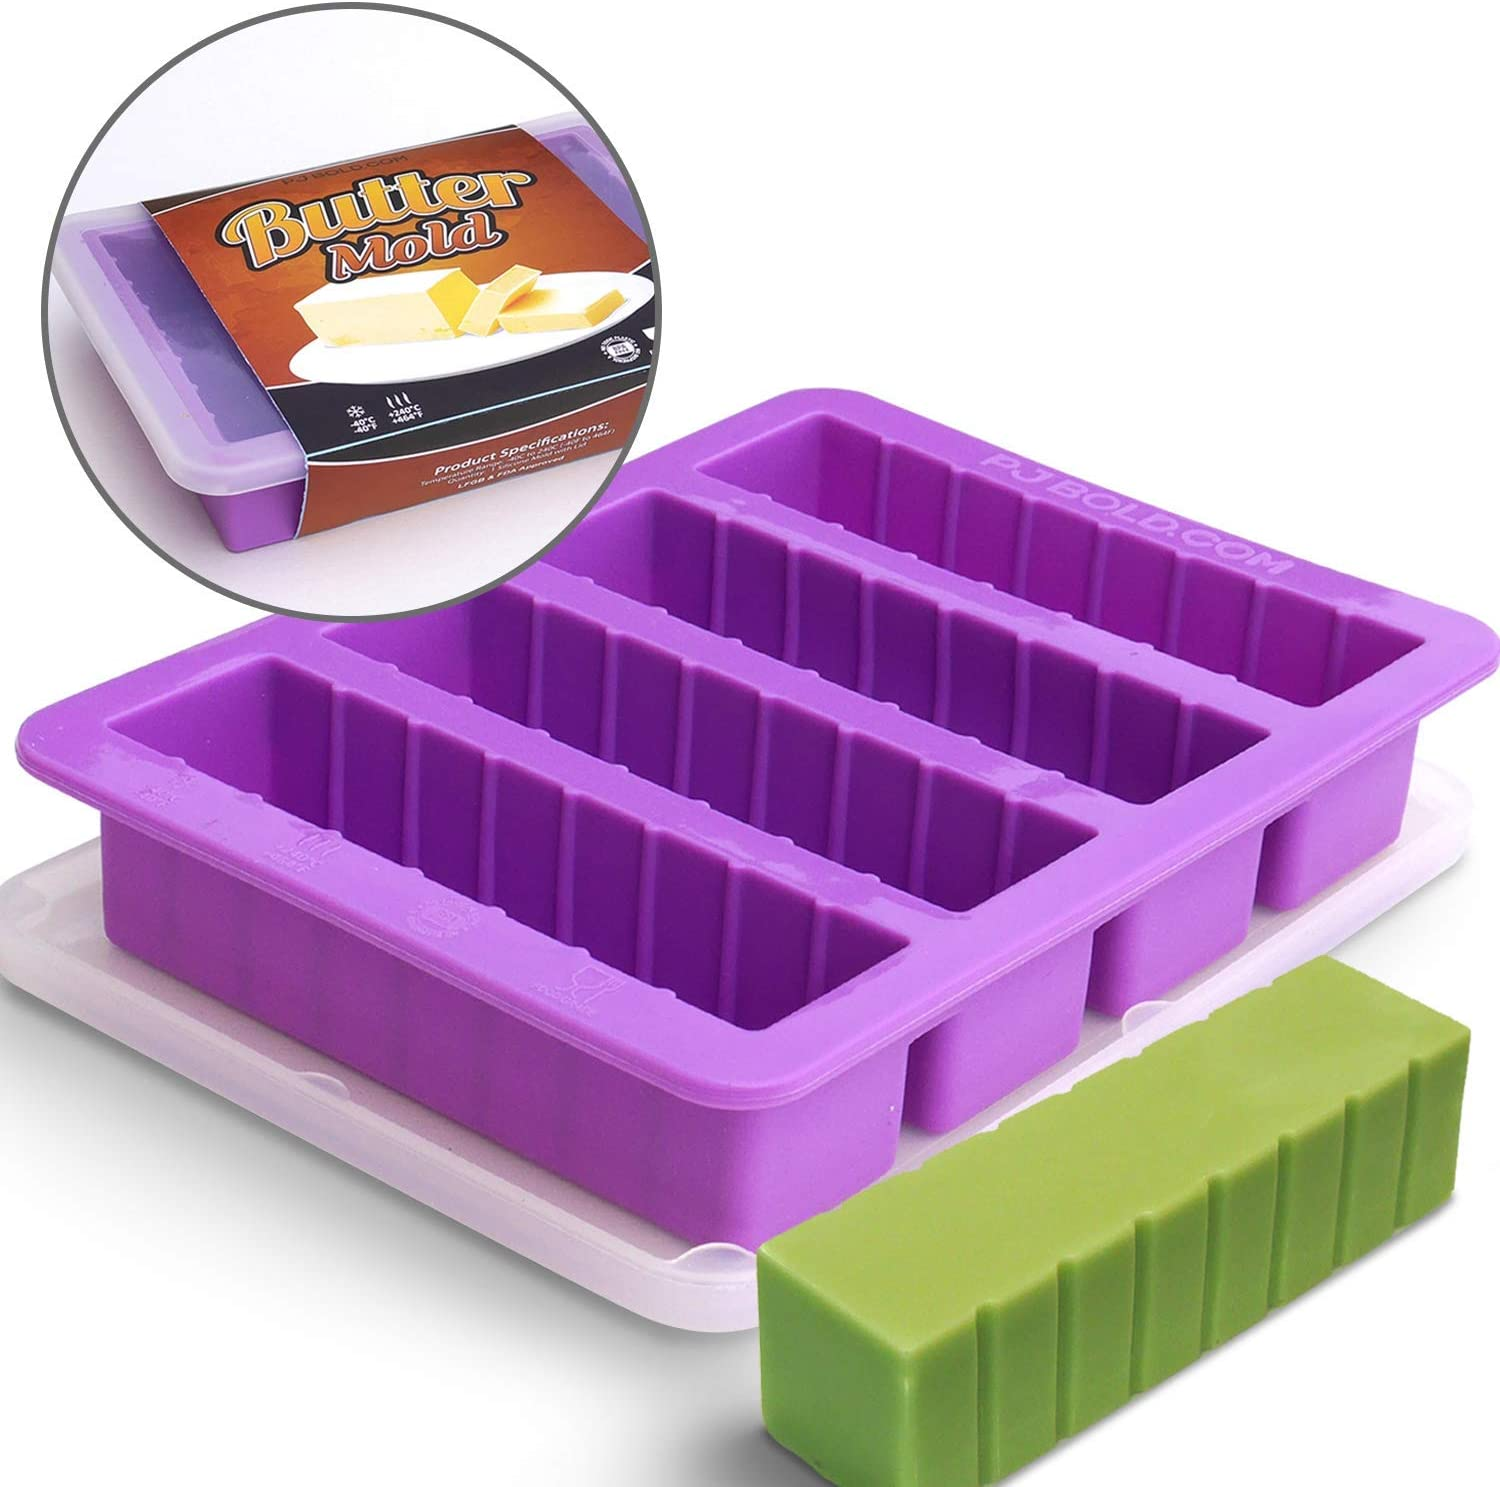 Butter Mold - Silicone - With Lid